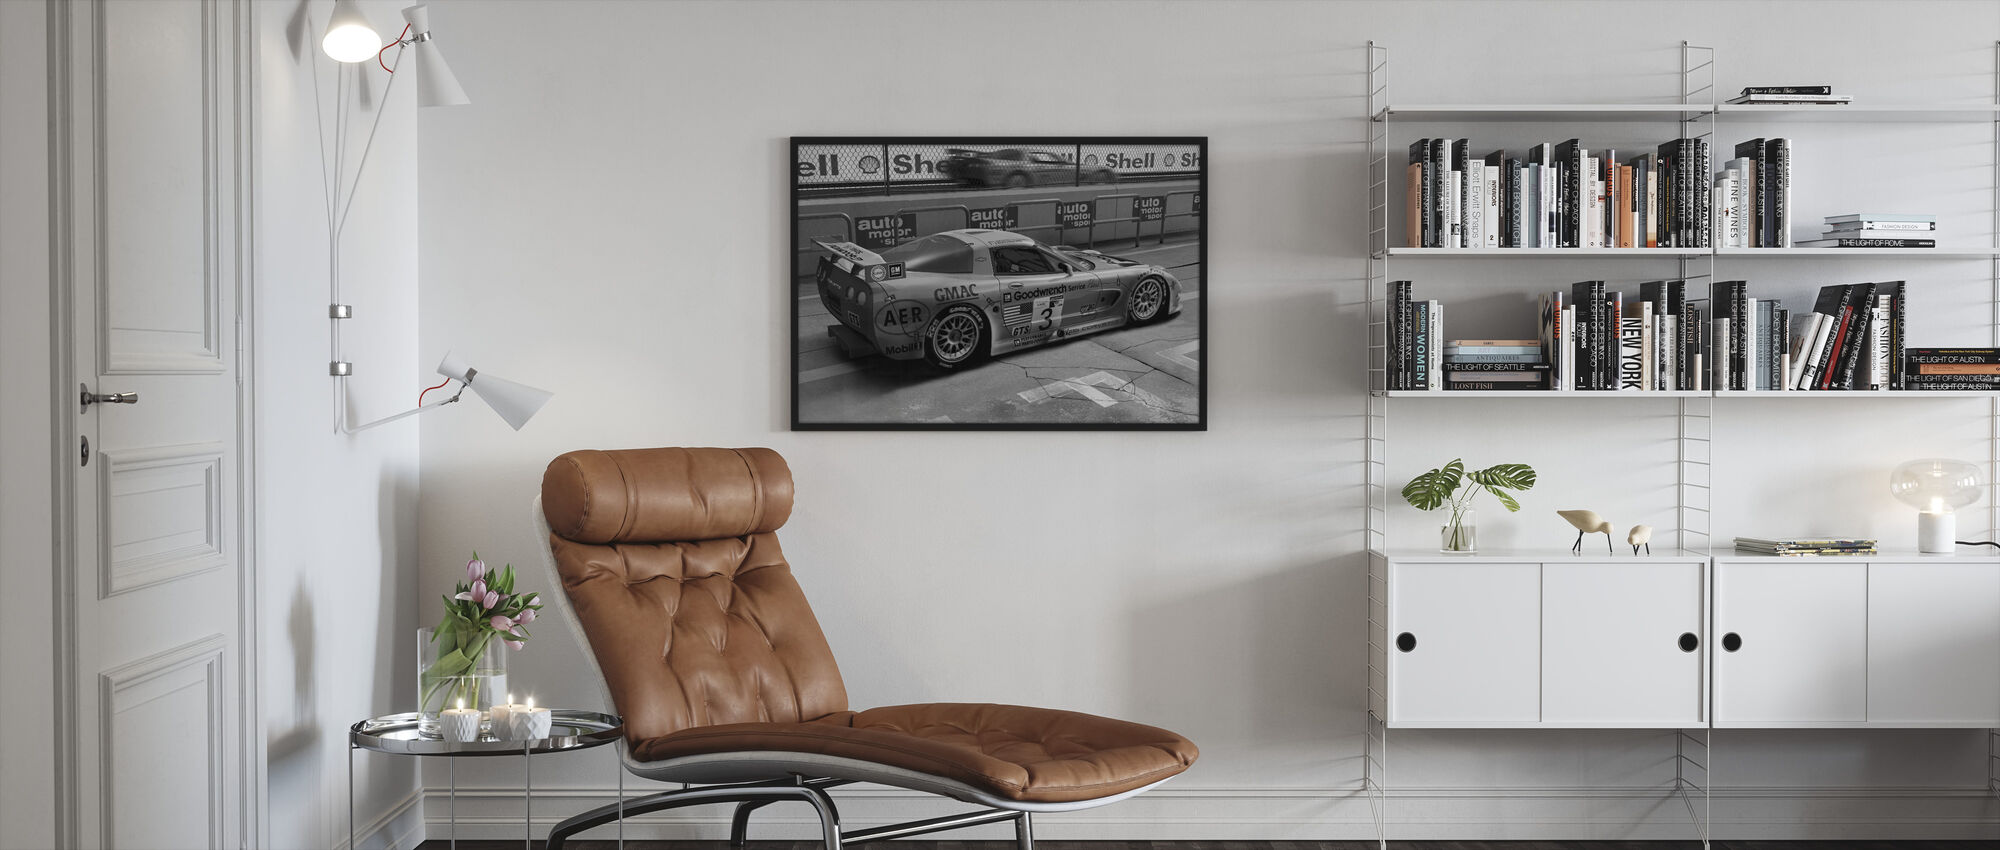 Car In Pit Lane BW - Framed print - Living Room